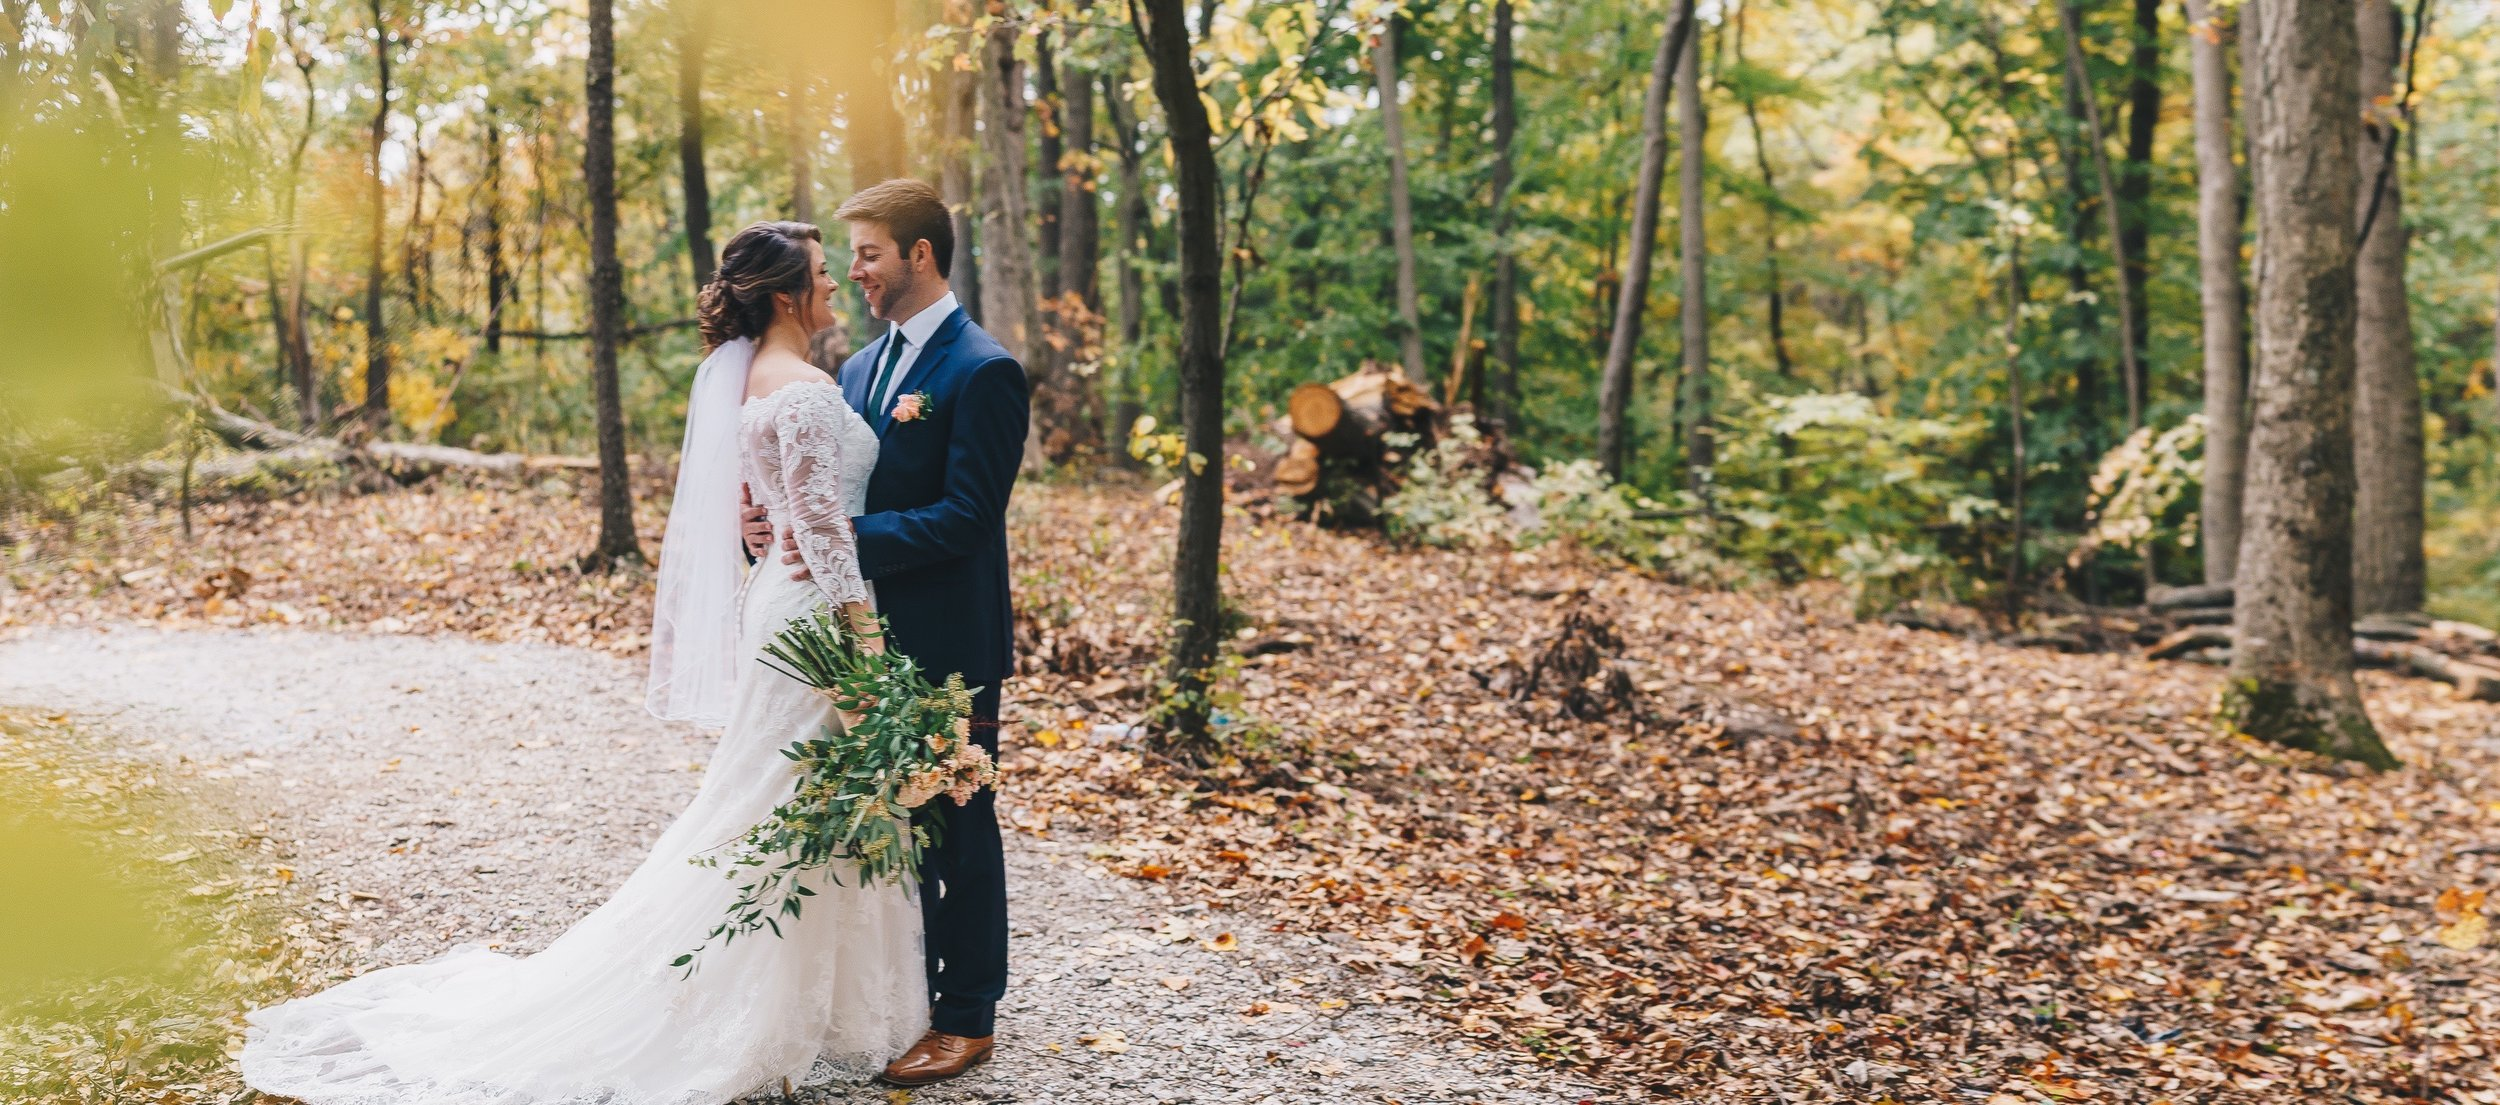 shabby chic rustic apple orchard wedding at historic round barn in gettysburg pa by jonathan hannah photography